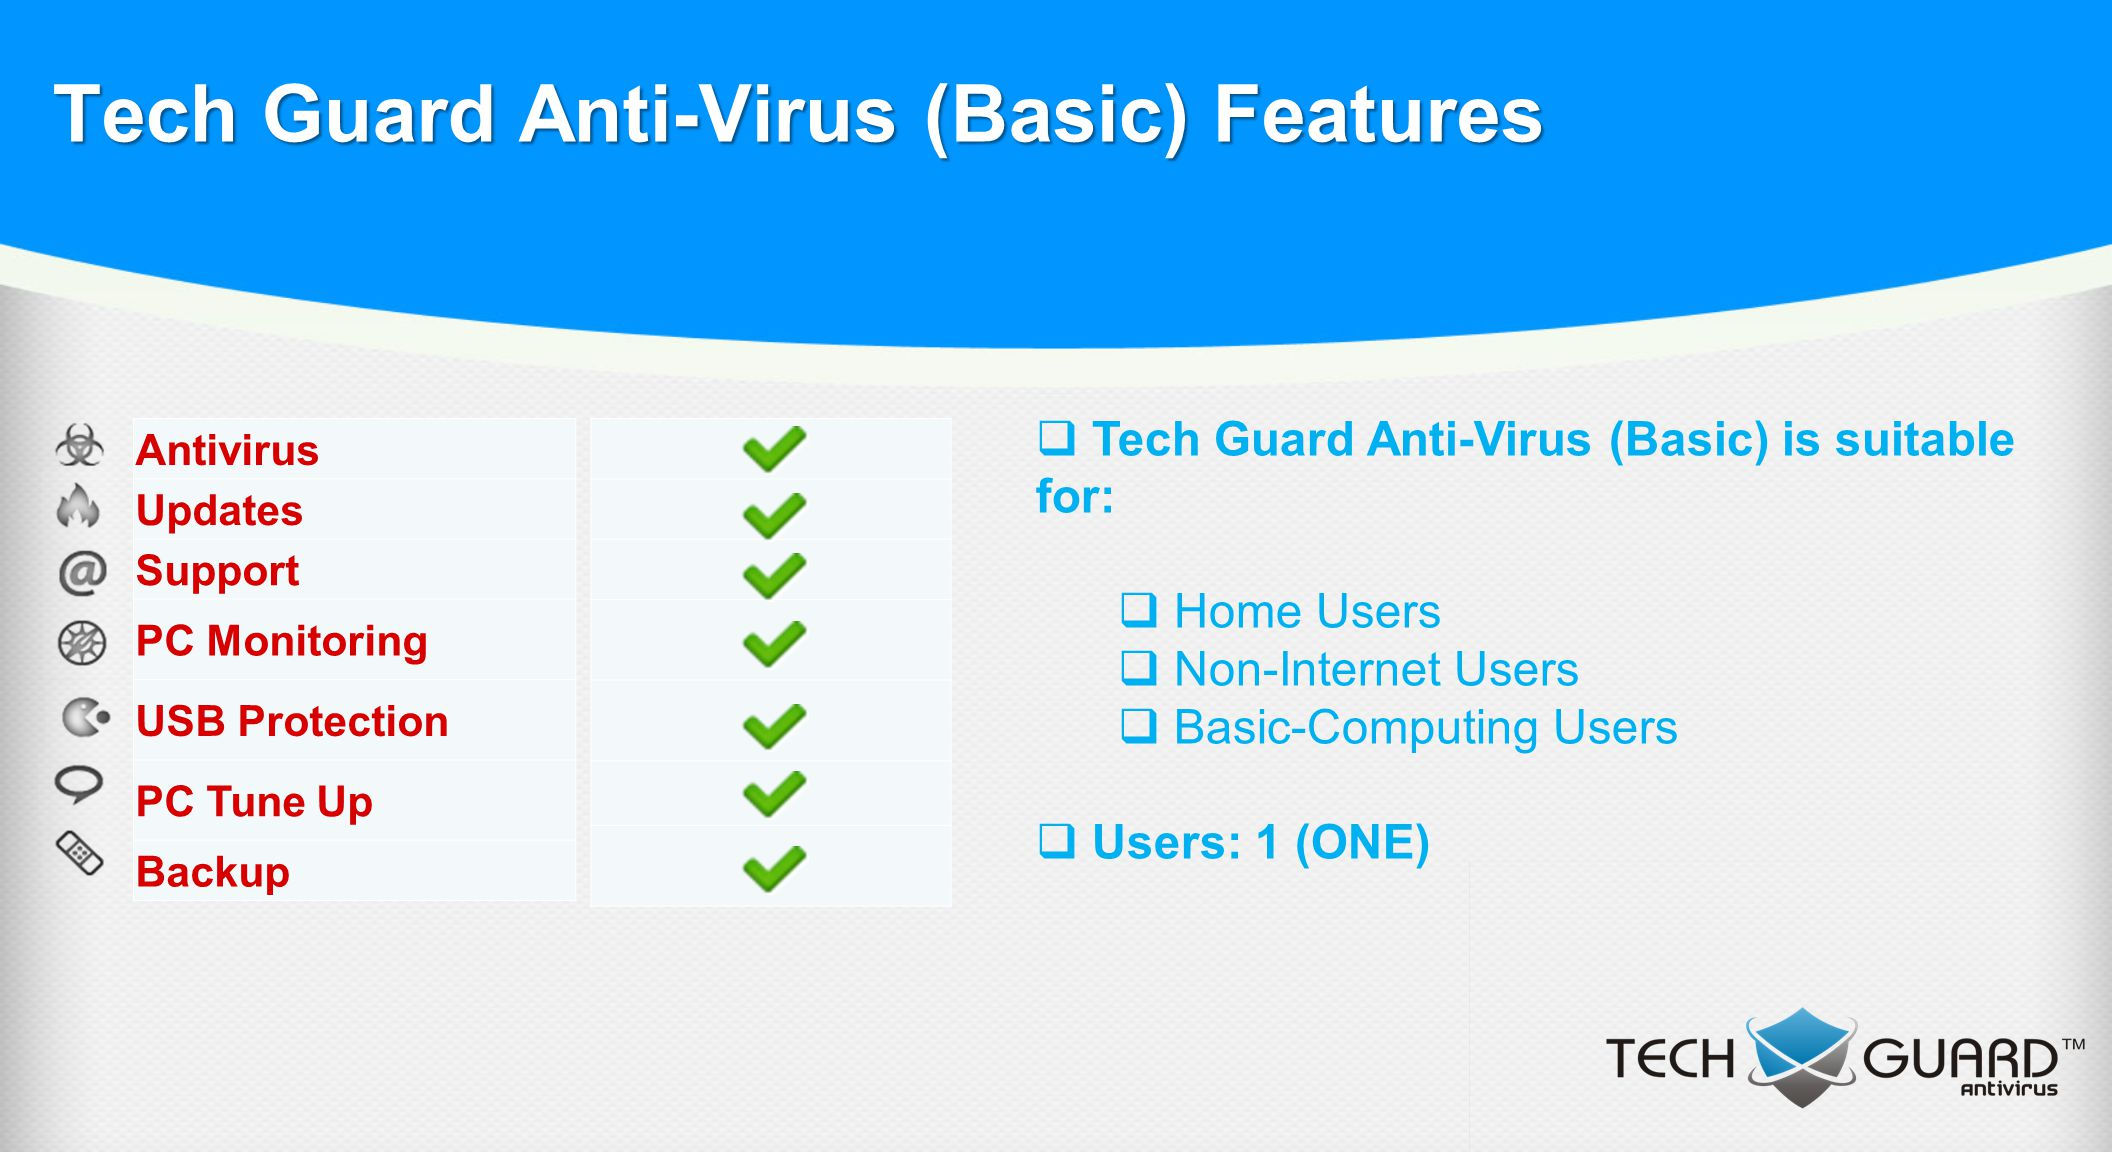 Tech Guard Anti-Virus (Basic) Features Antivirus Updates Support PC Monitoring USB Protection PC Tune Up Backup  Tech Guard Anti-Virus (Basic) is suitable for:  Home Users  Non-Internet Users  Basic-Computing Users  Users: 1 (ONE)